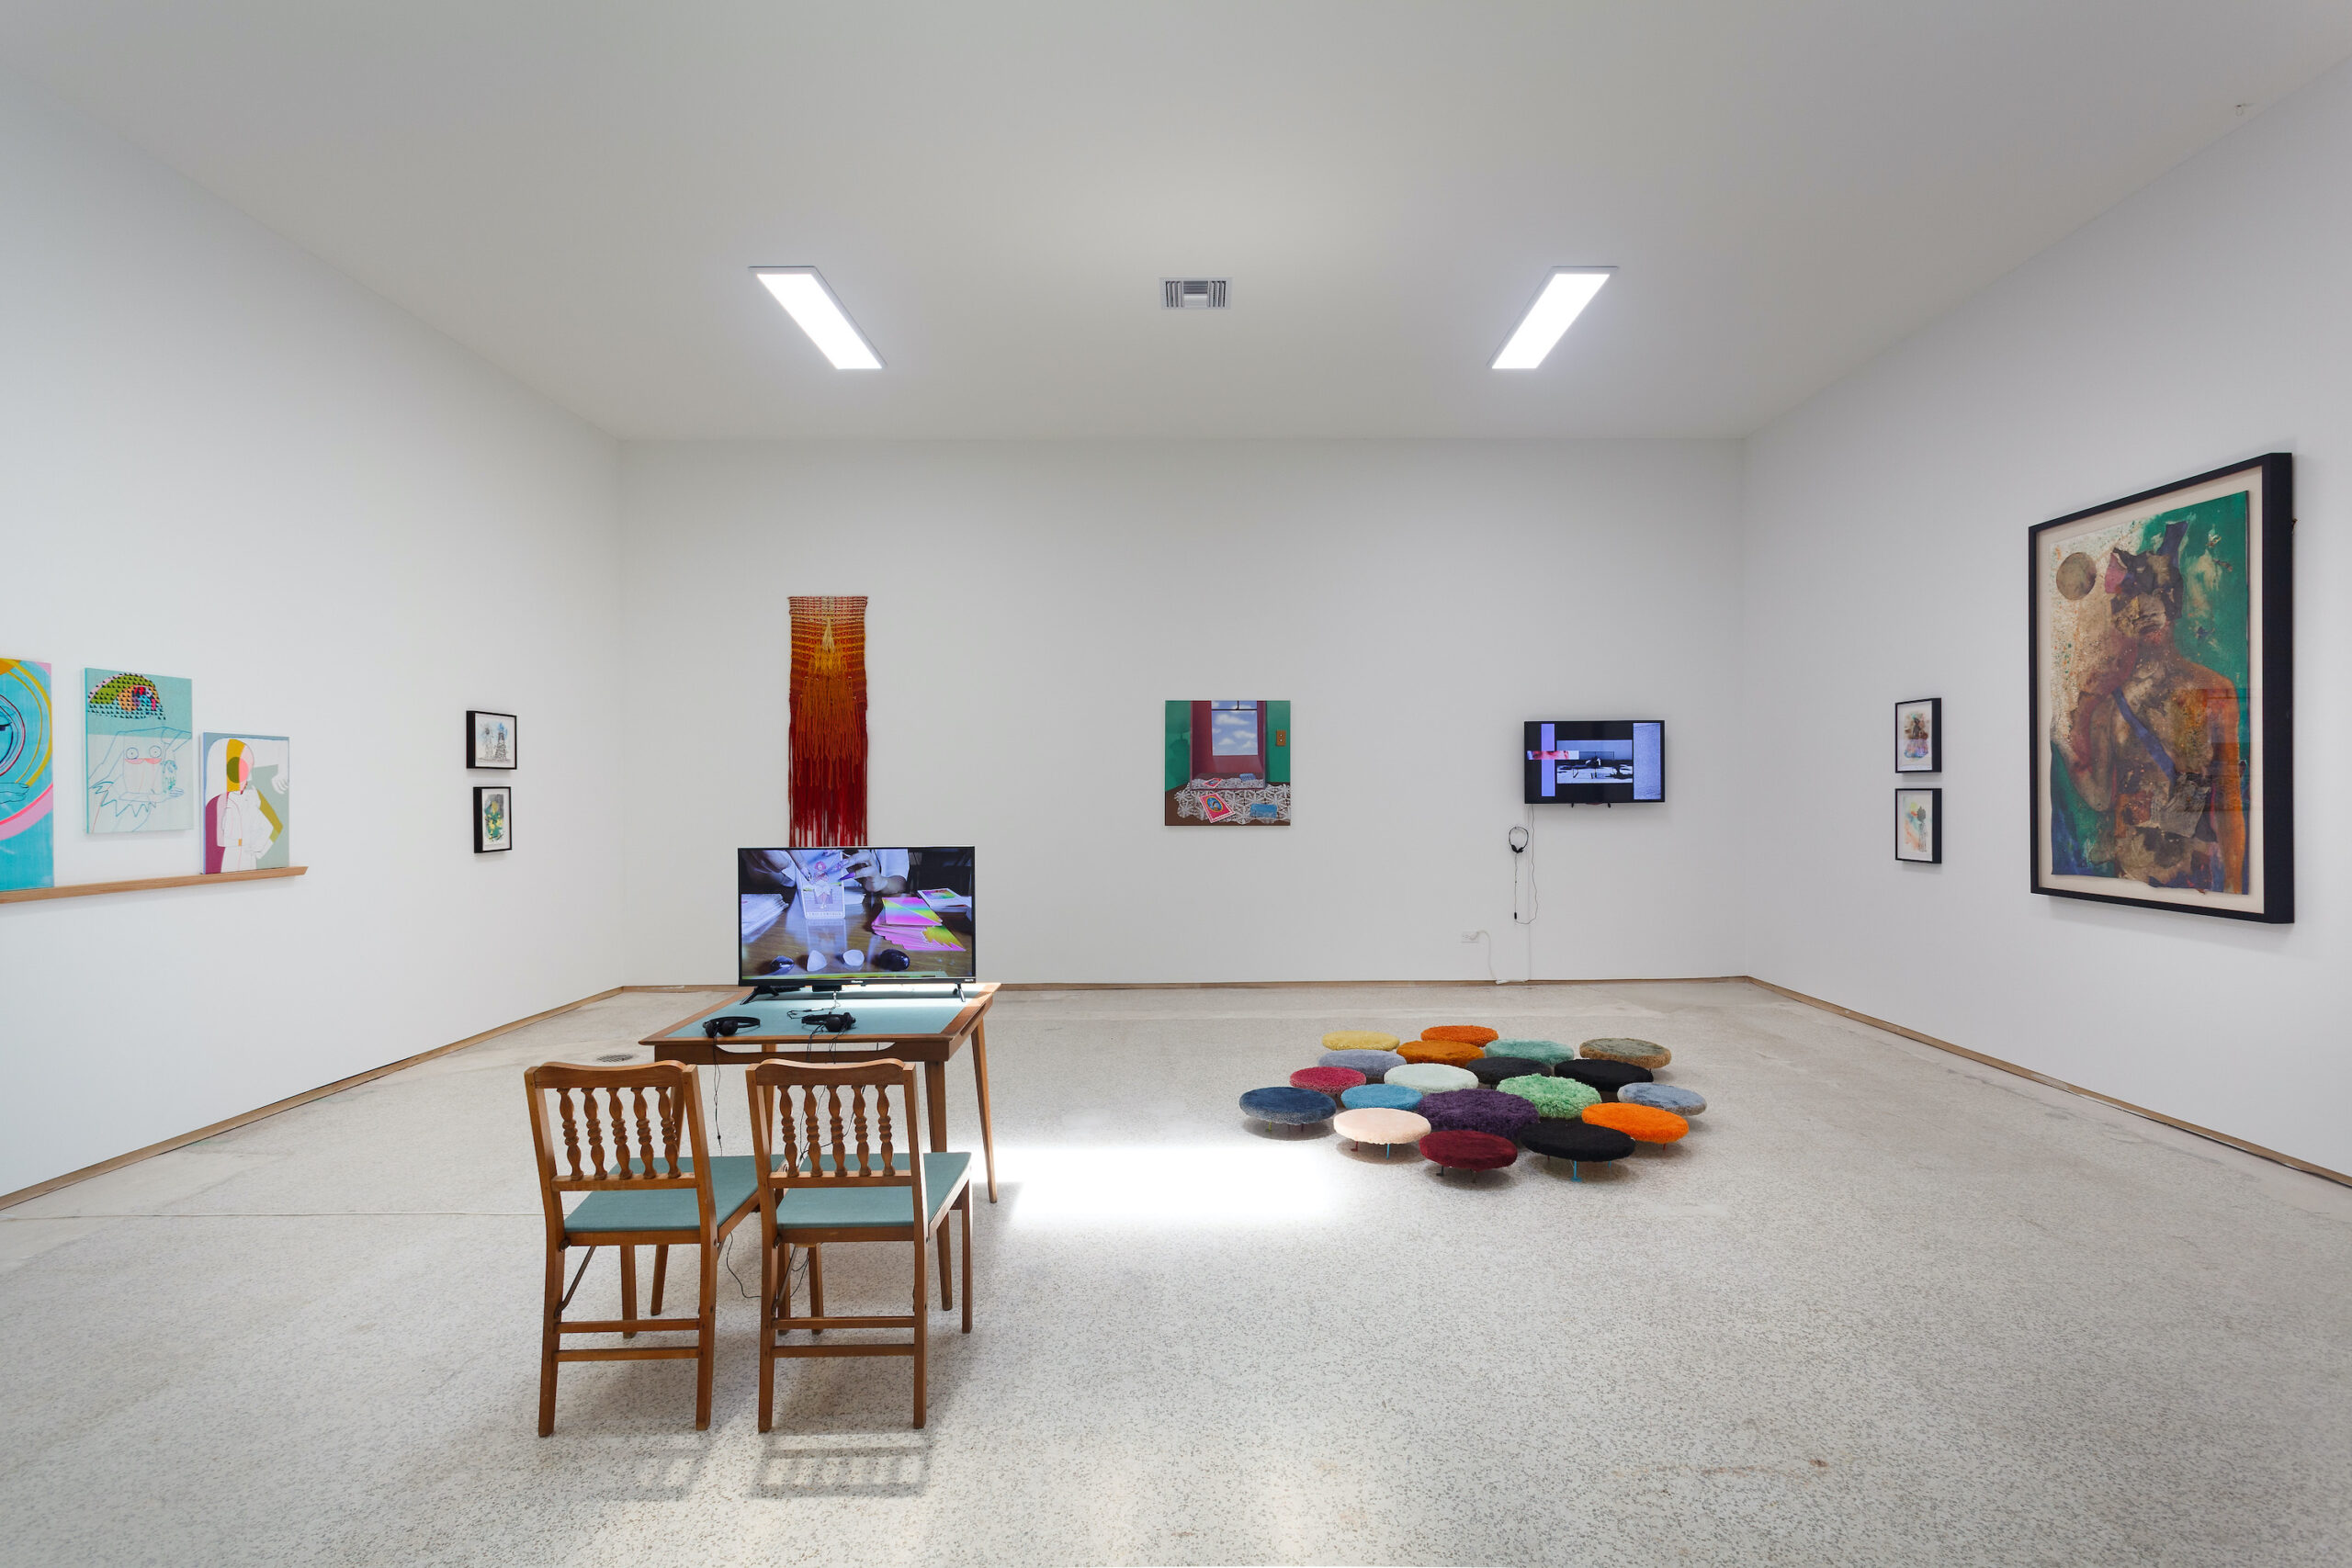 our constellations: astral embraces and tactual consciousness (Installation view k), 2021, Emerson Dorsch, Miami FL